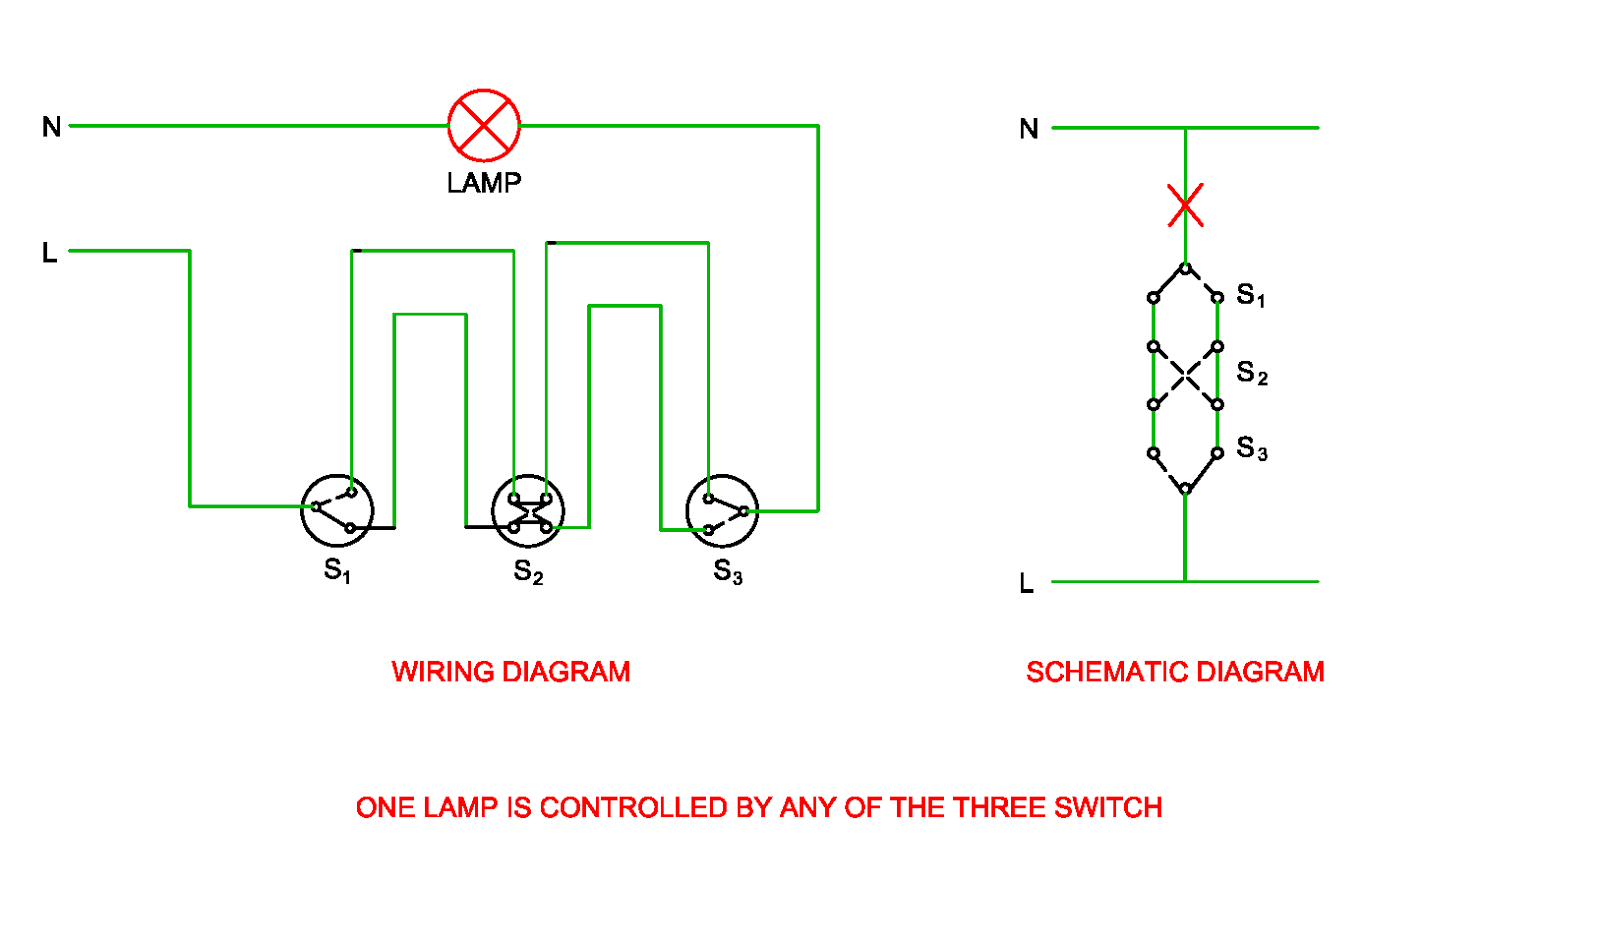 hight resolution of one lamp is controlled by three switches